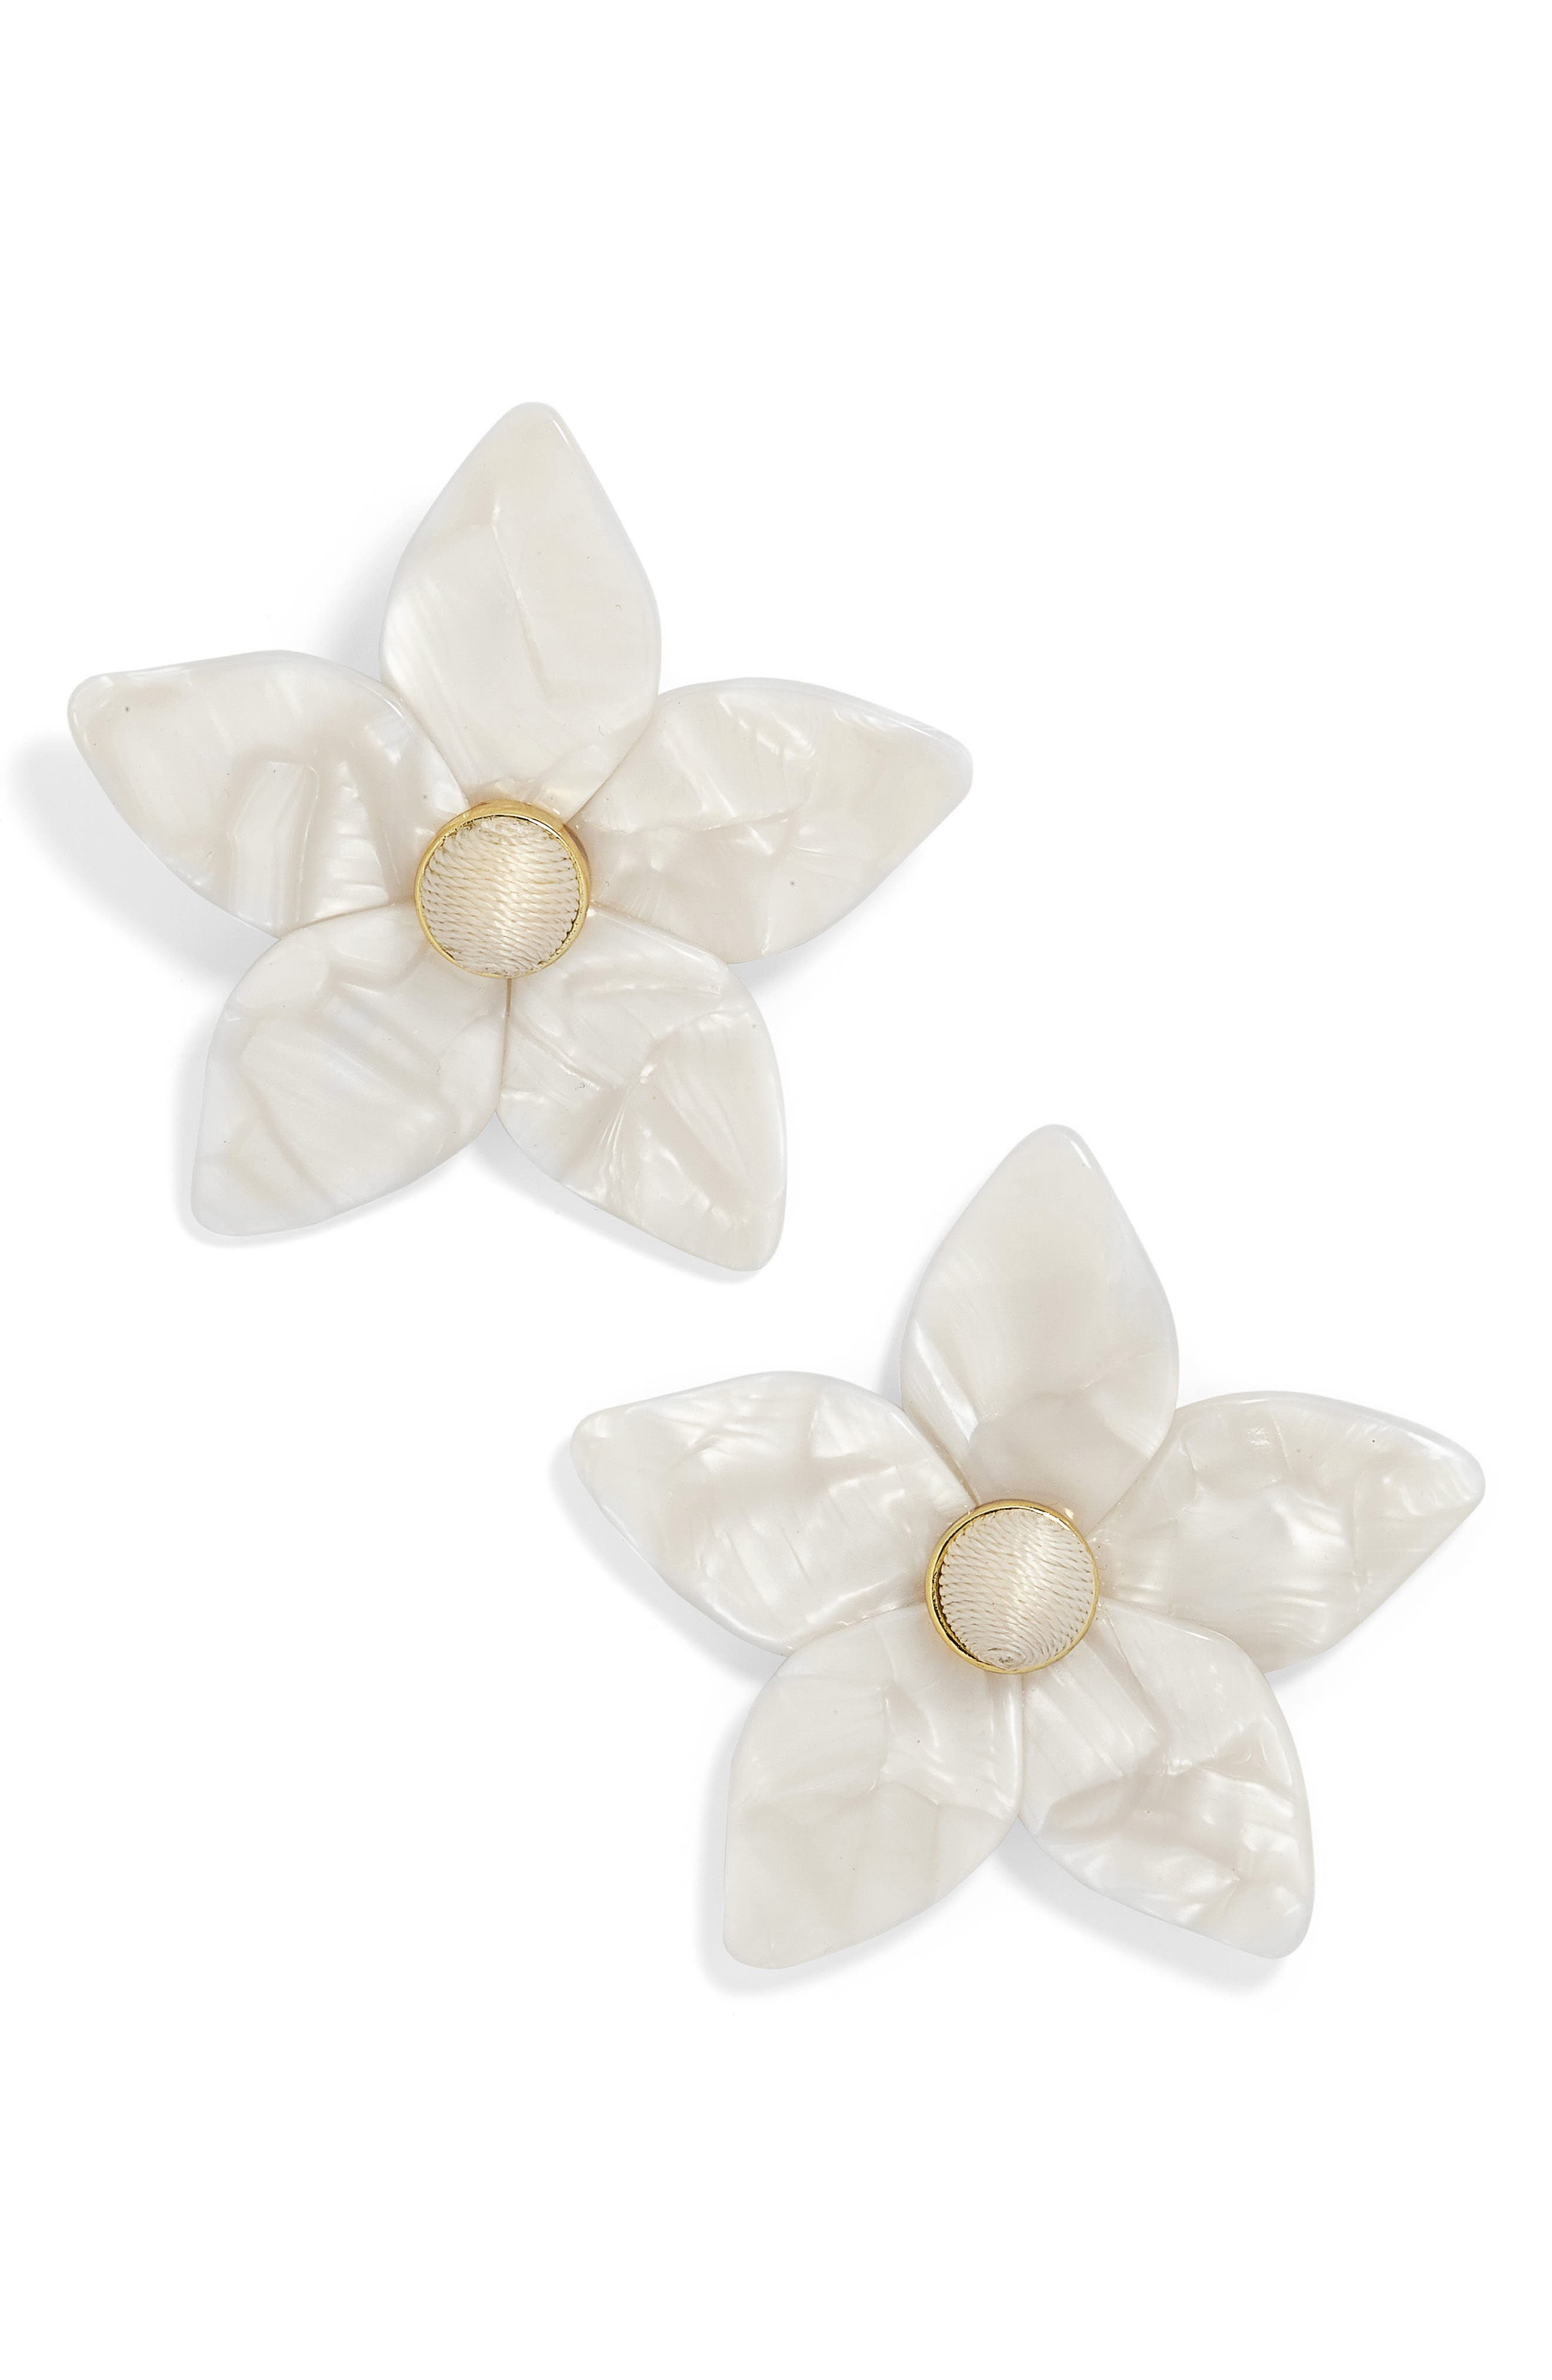 Amariella Acrylic Flower Stud Earrings,                         Main,                         color, WHITE